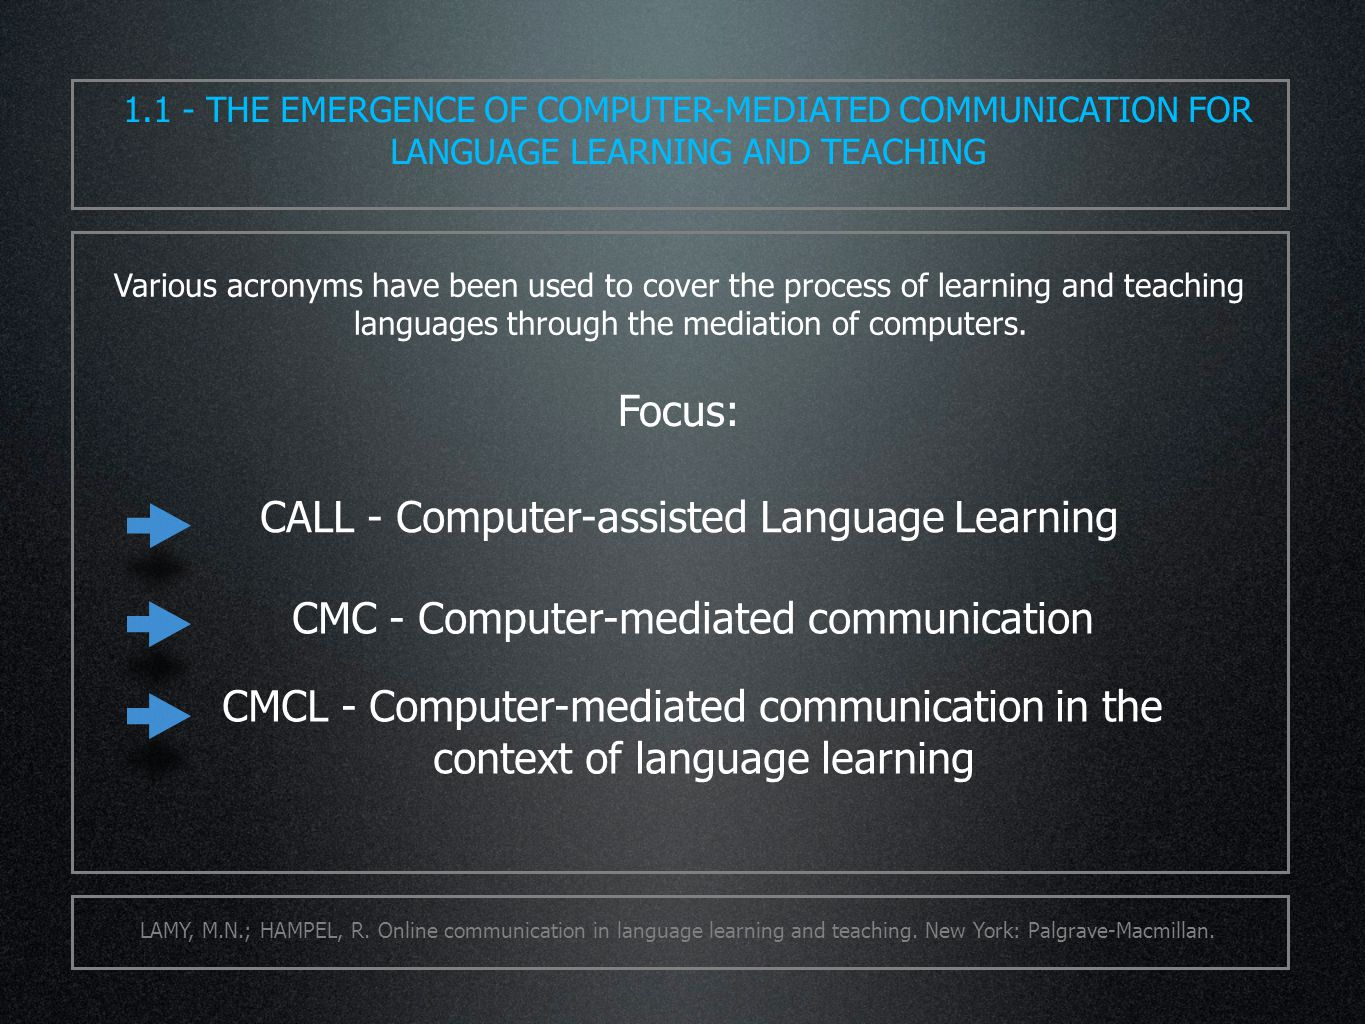 Various acronyms have been used to cover the process of learning and teaching languages through the mediation of computers.